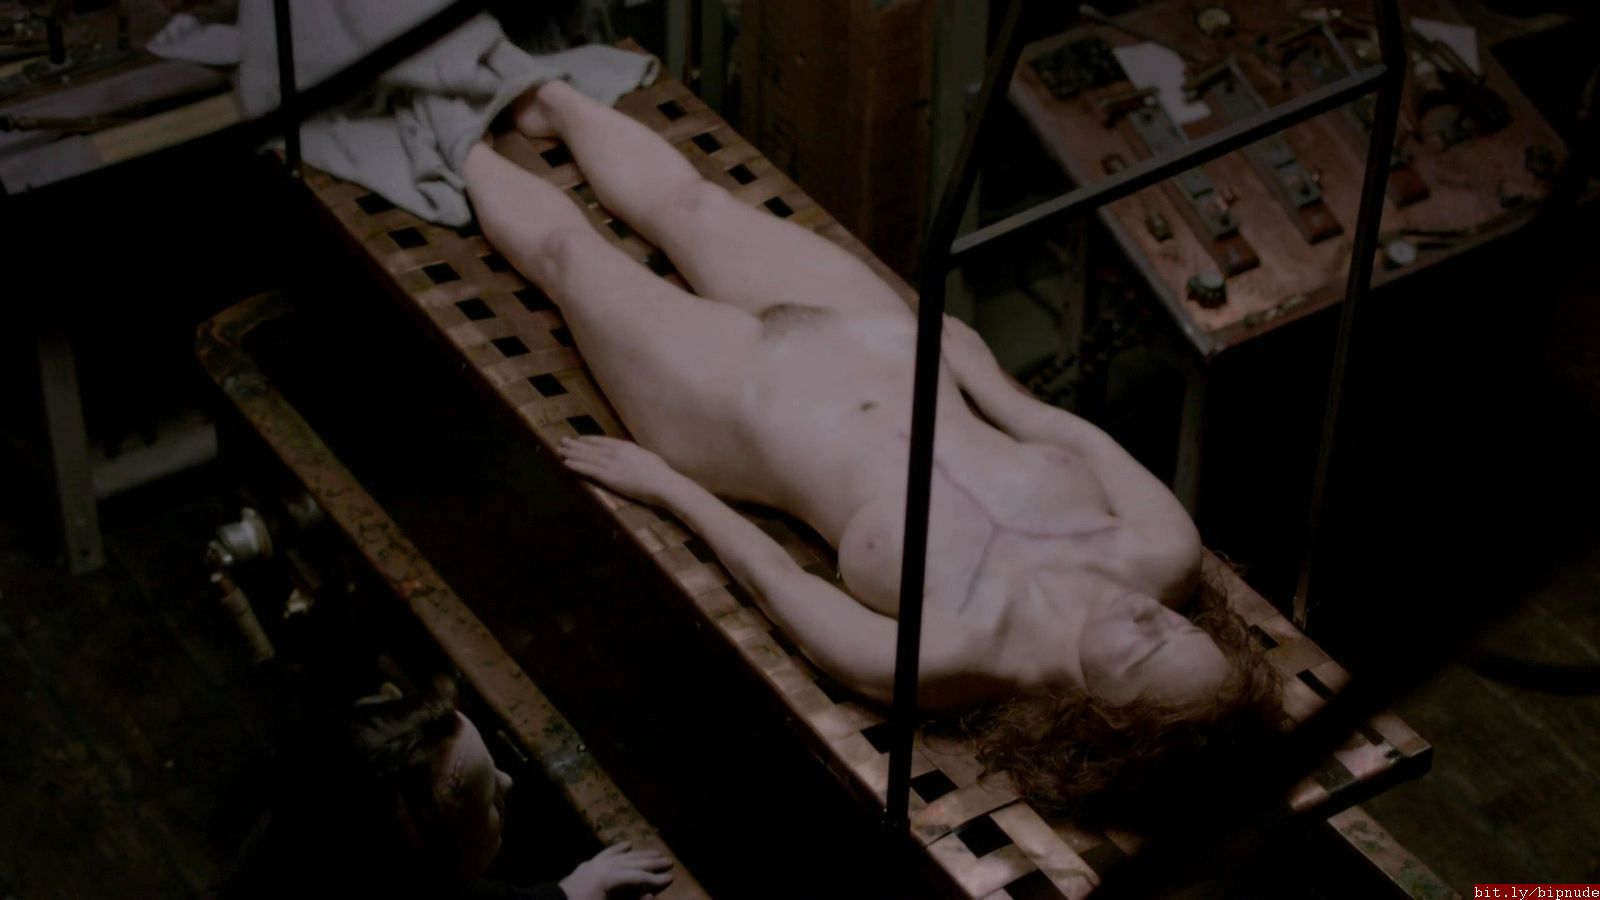 Billie piper naked penny dreadful